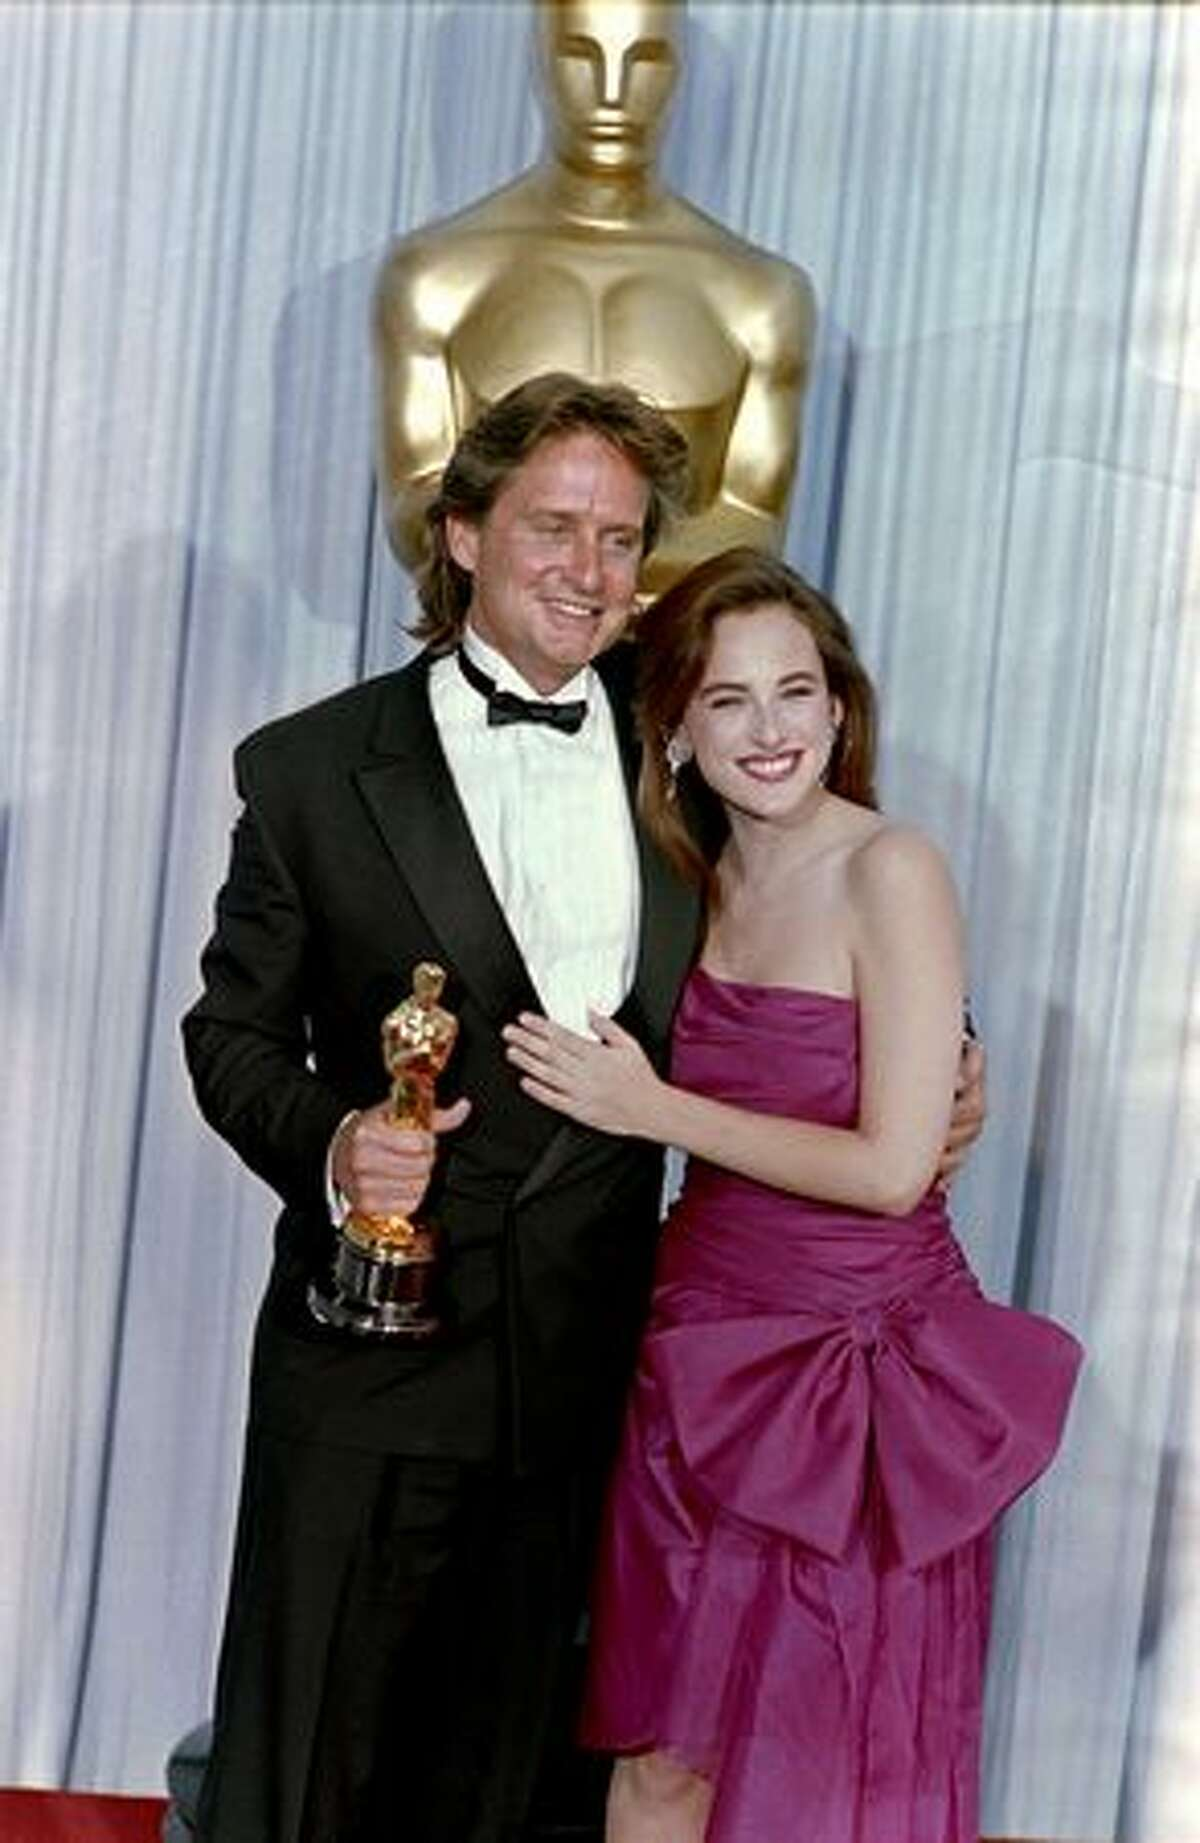 1988: Actor Michael Douglas, accompanied by actress Marlee Matlin, poses with his Best Actor Oscar for the film